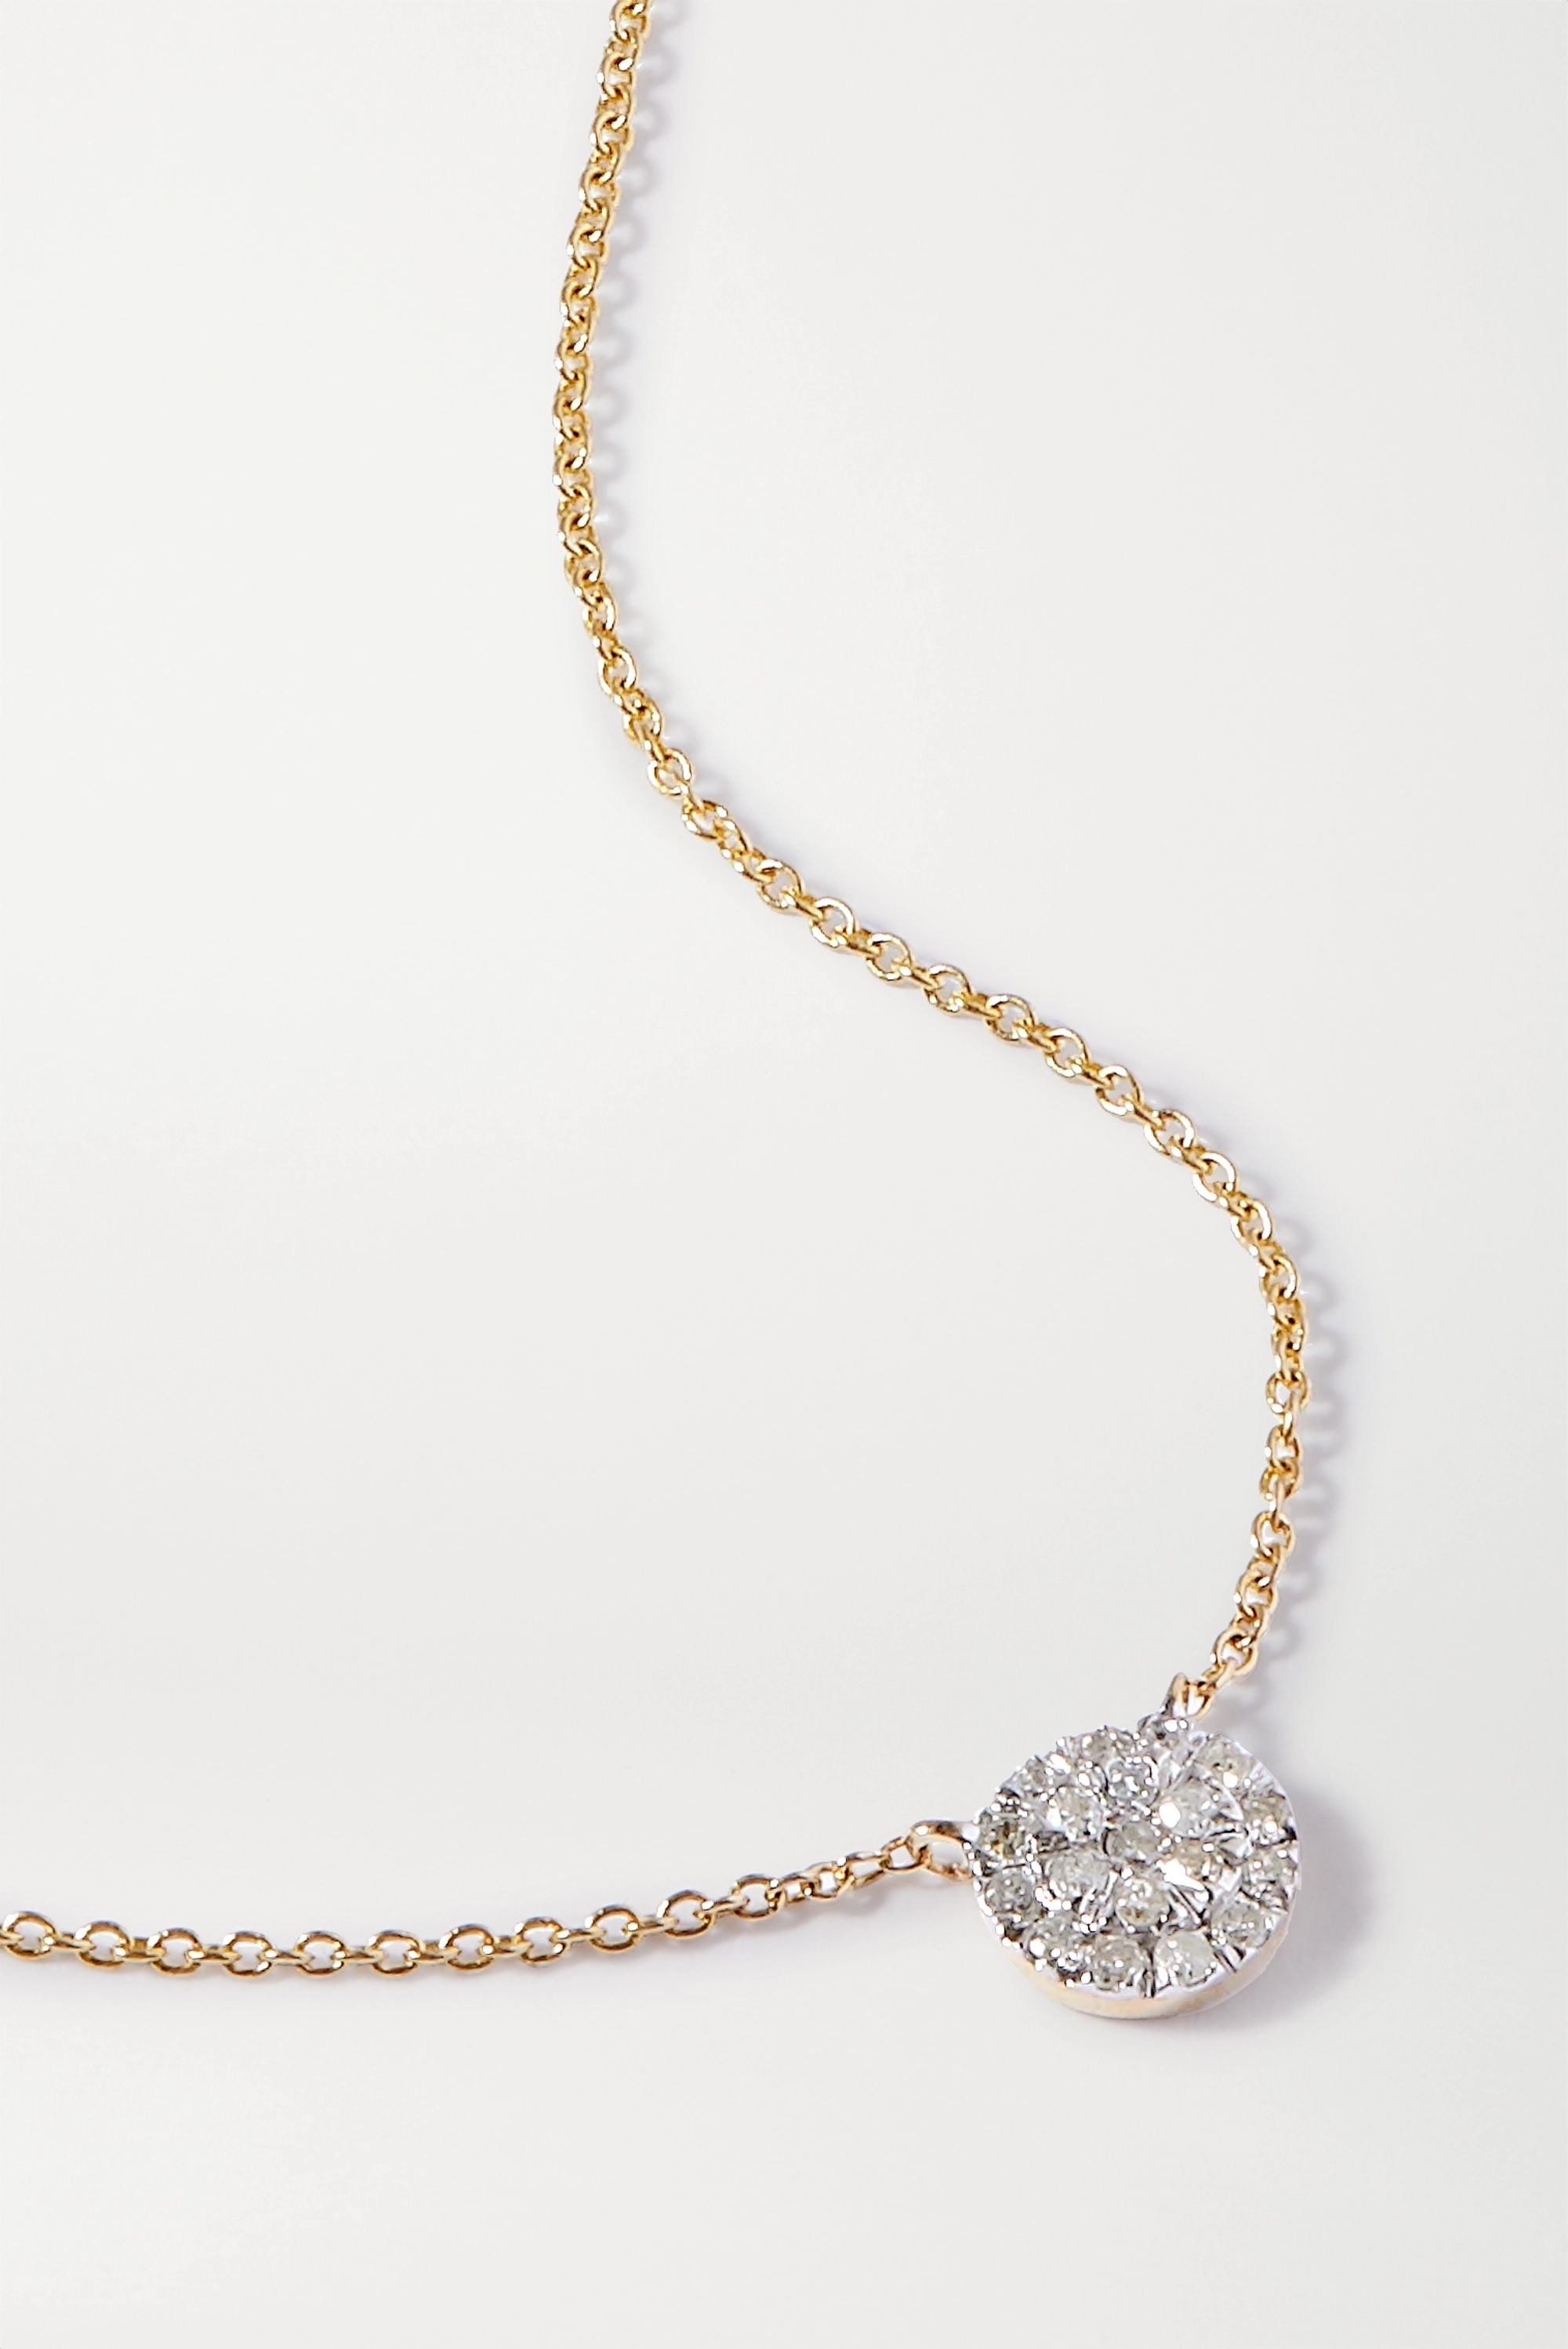 STONE AND STRAND Strength In Solitude 14-karat gold diamond necklace